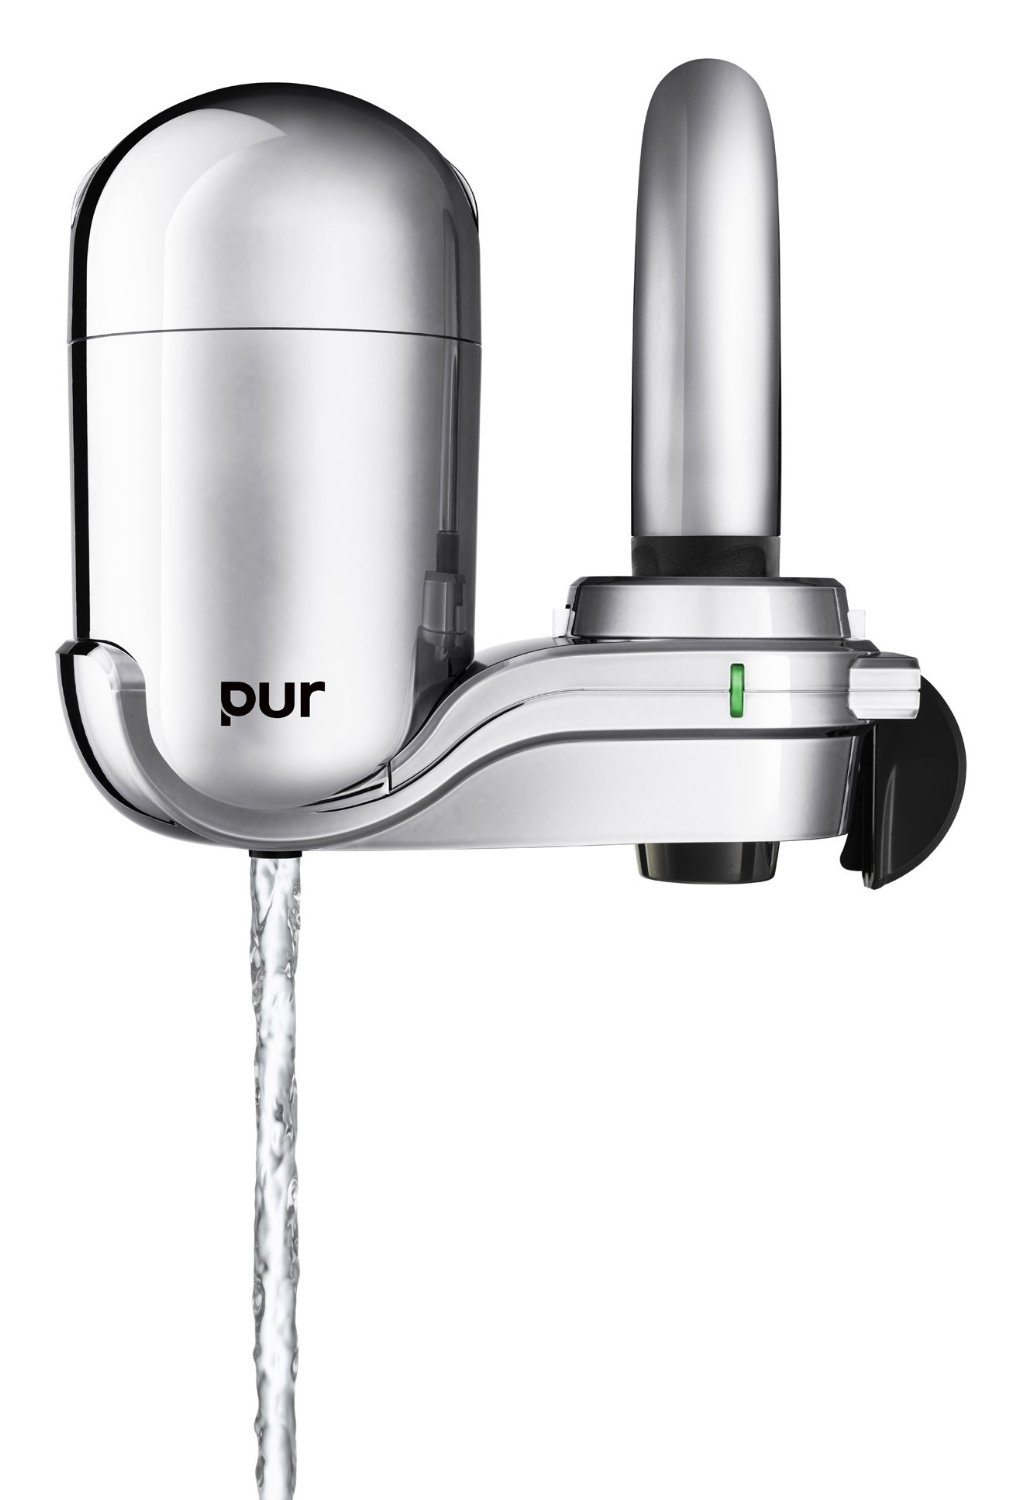 Ideas, water filter that connects to faucet water filter that connects to faucet top 10 best water filters top value reviews 1009 x 1500  .